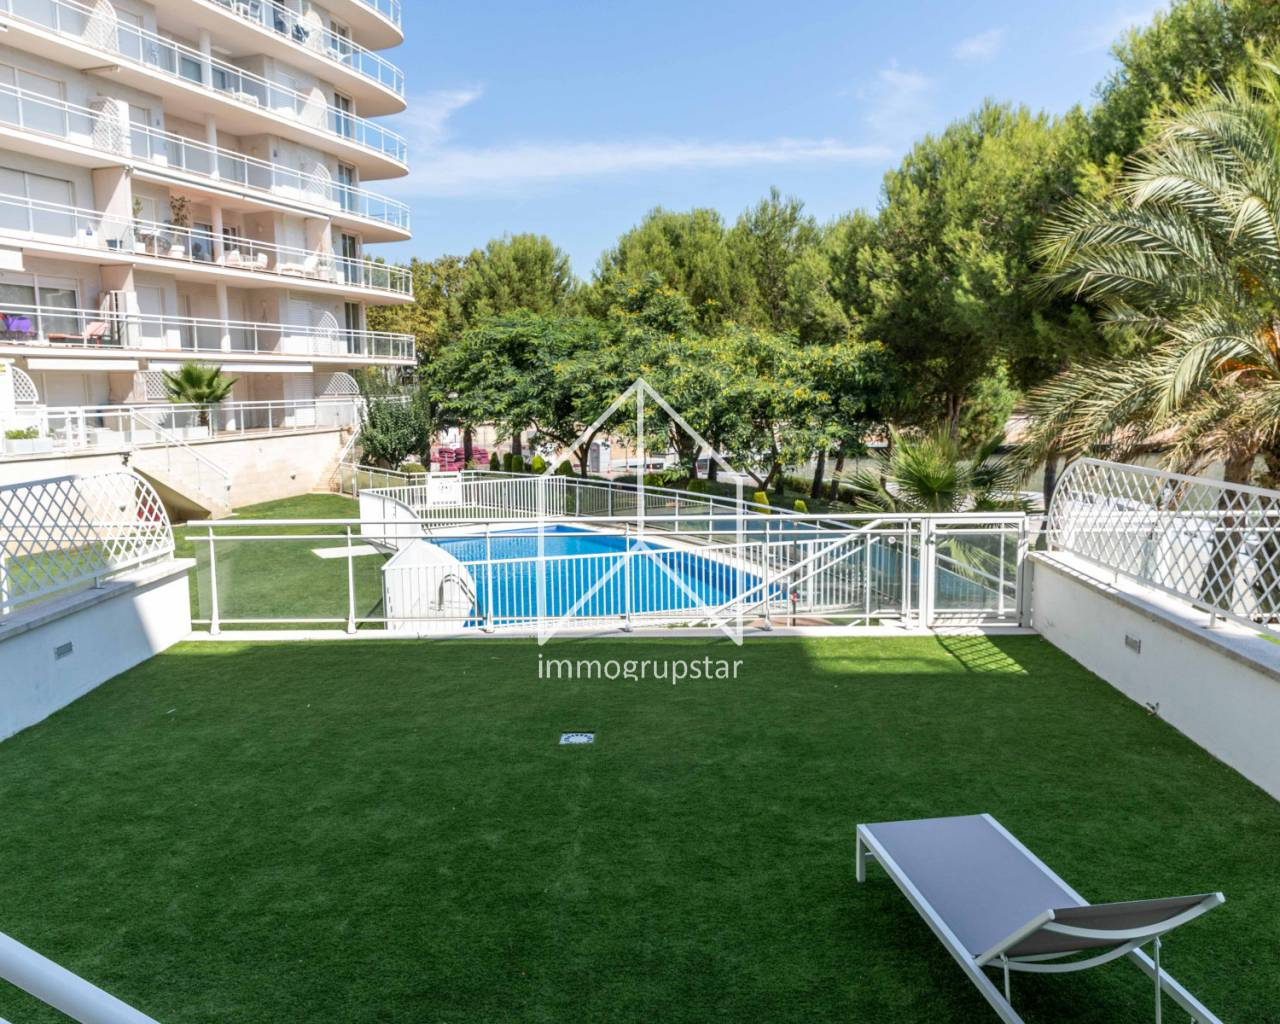 Apartment - Resale - Castell-Platja D'aro - PORT D'ARO